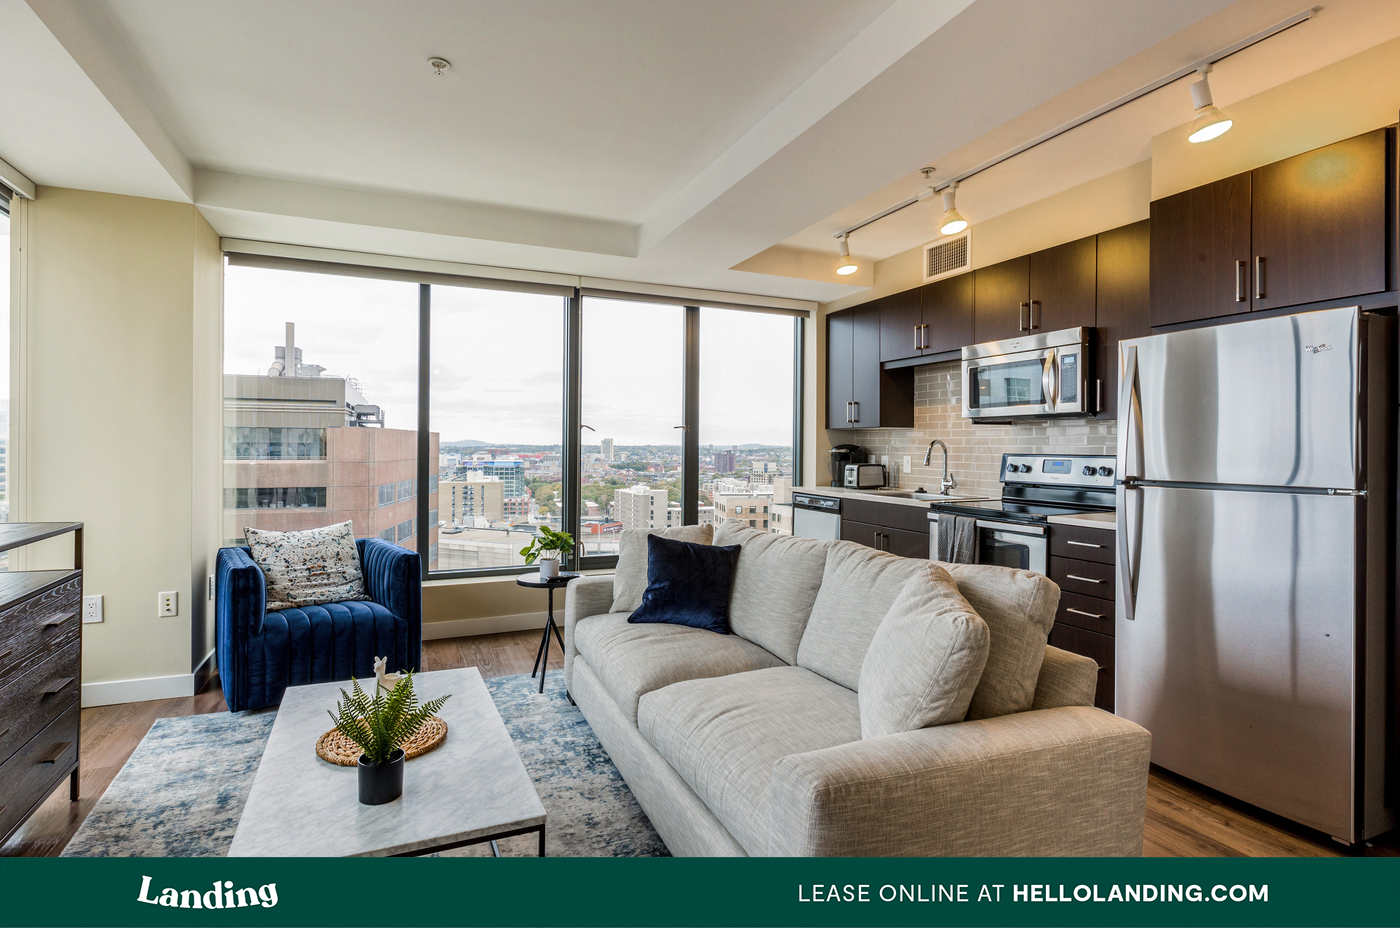 Landing Furnished Apartment Sycamore Canyon Apartment Homes